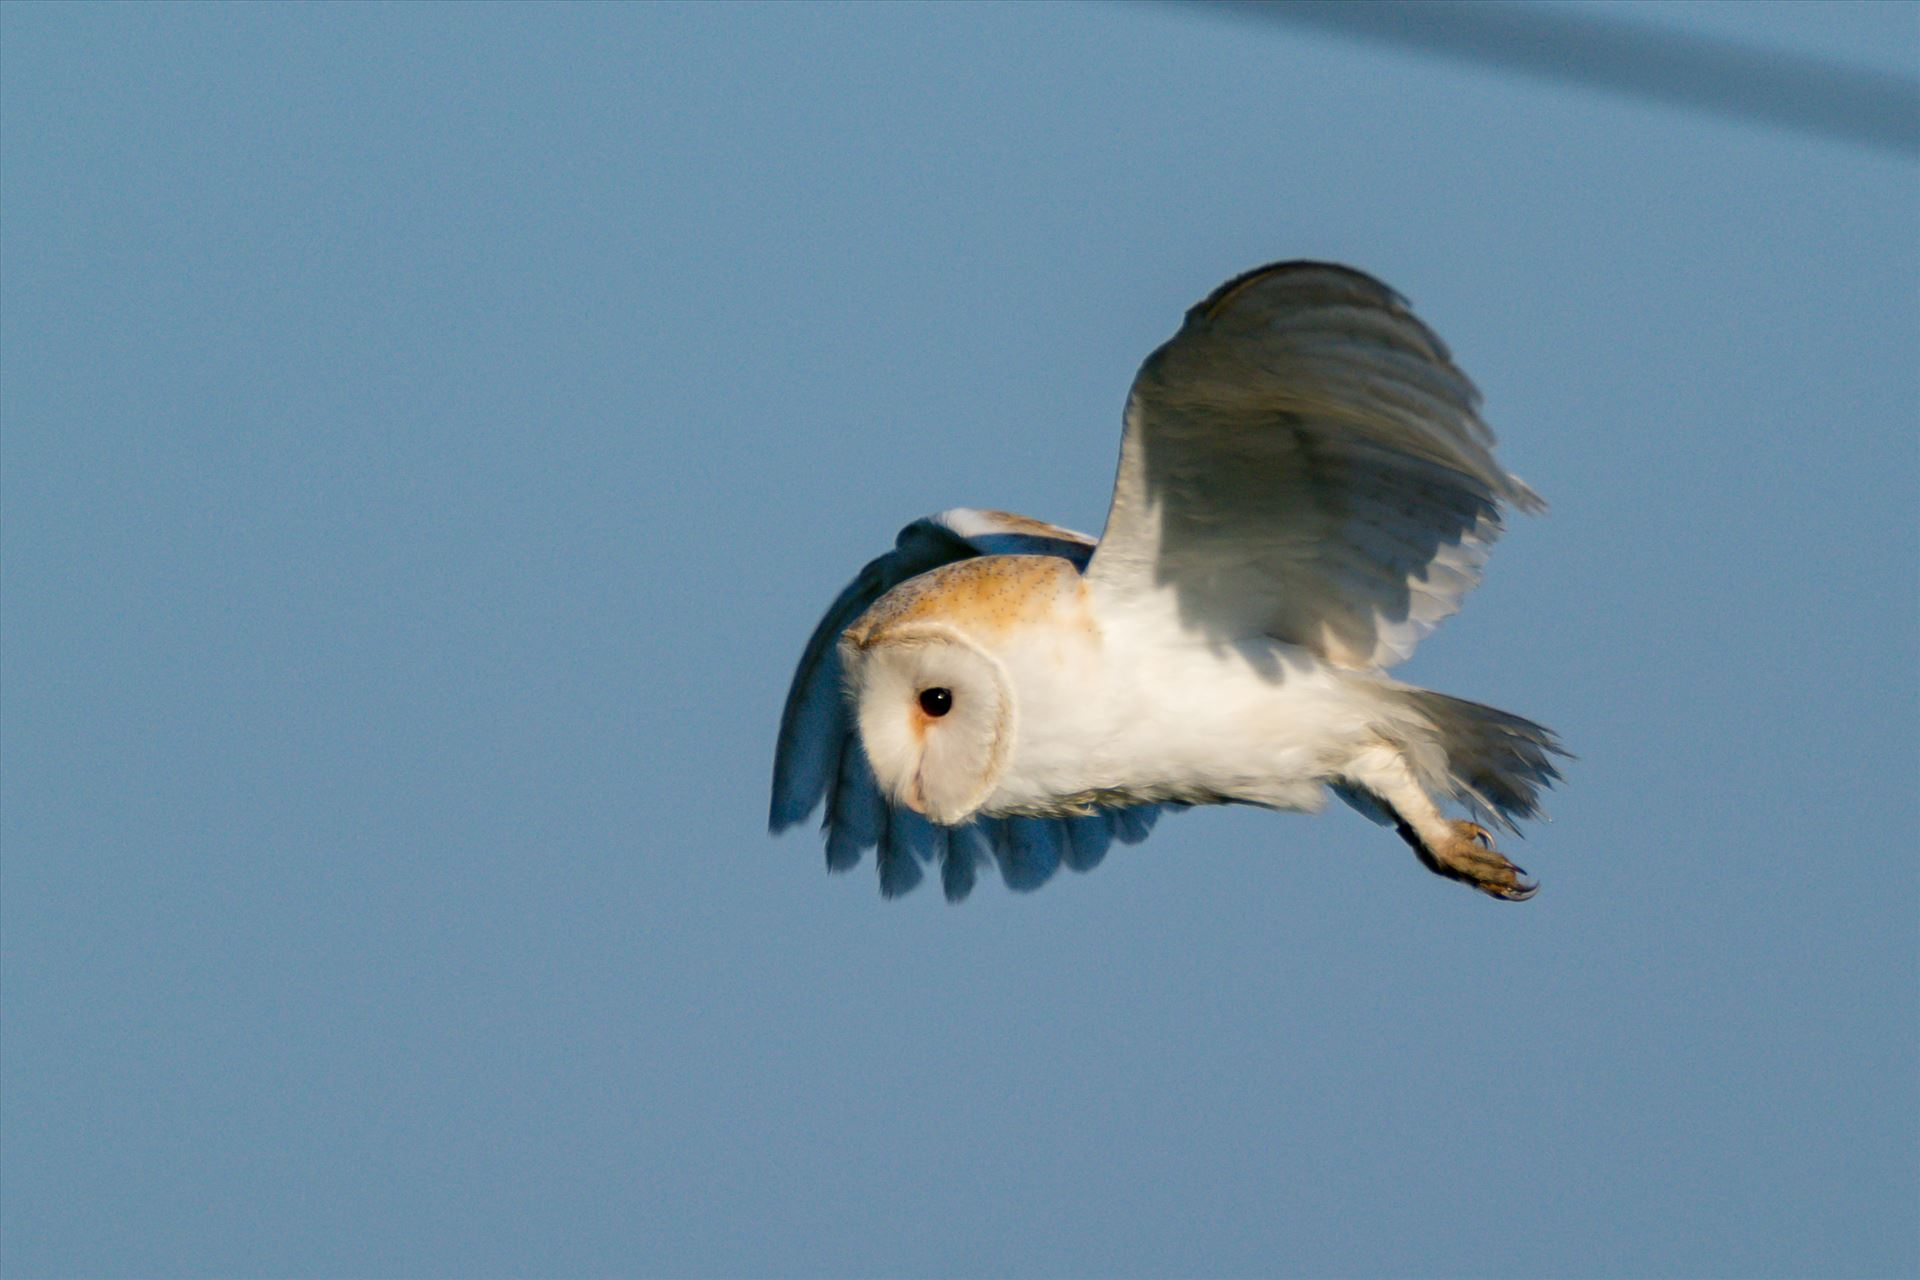 Barn Owl on the hunt 06 A Barn Owl on the hunt for its breakfast by AJ Stoves Photography